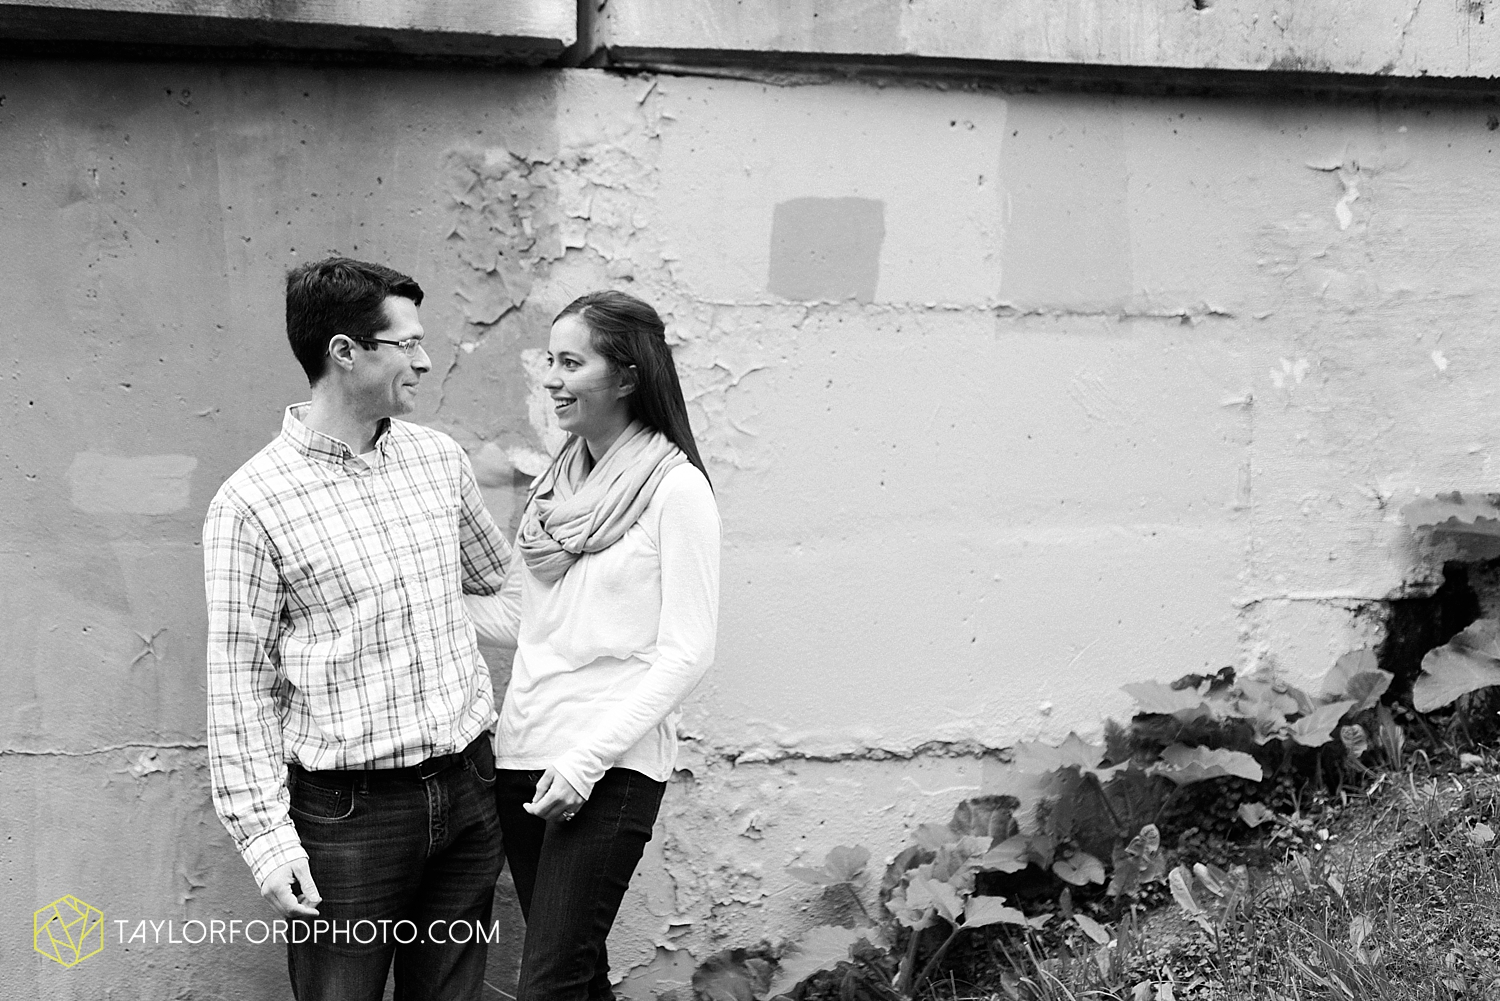 fort_wayne_indiana_family_photography_taylor_ford_0900.jpg